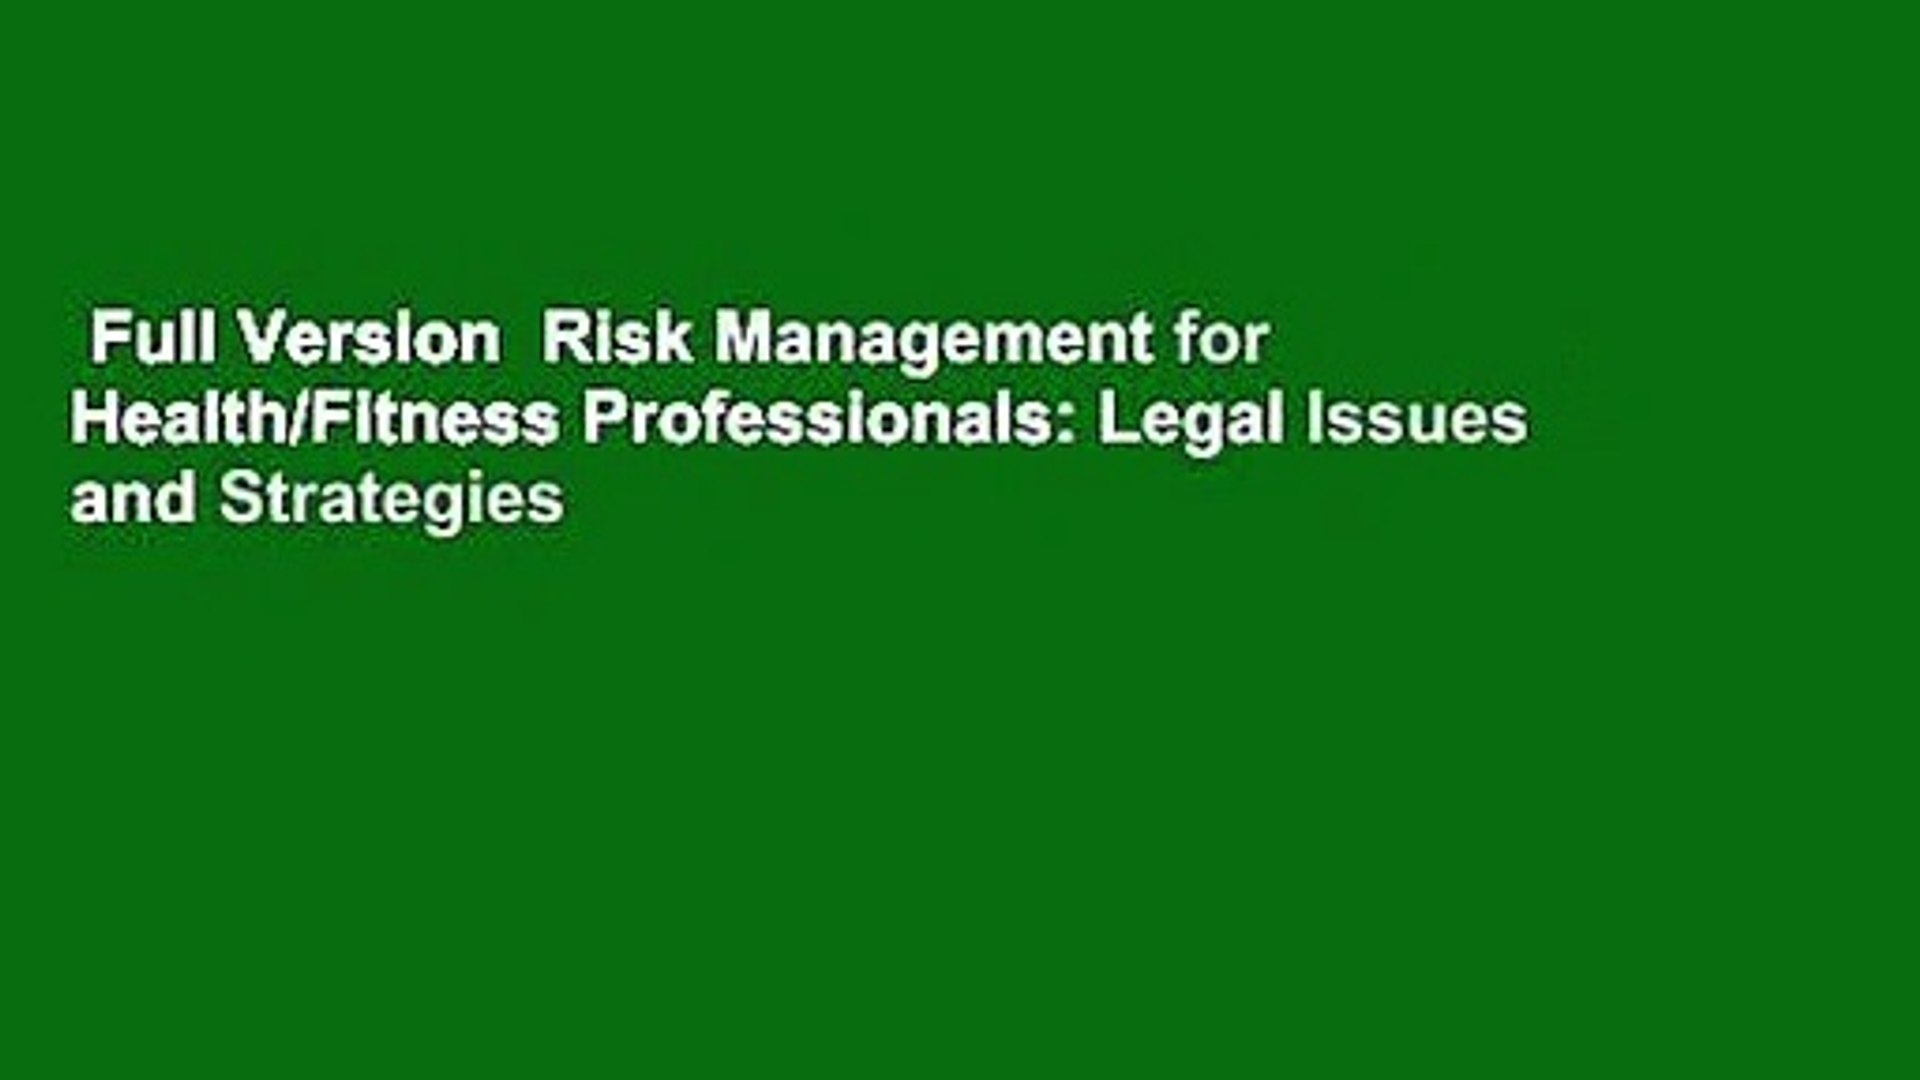 Full Version  Risk Management for Health/Fitness Professionals: Legal Issues and Strategies